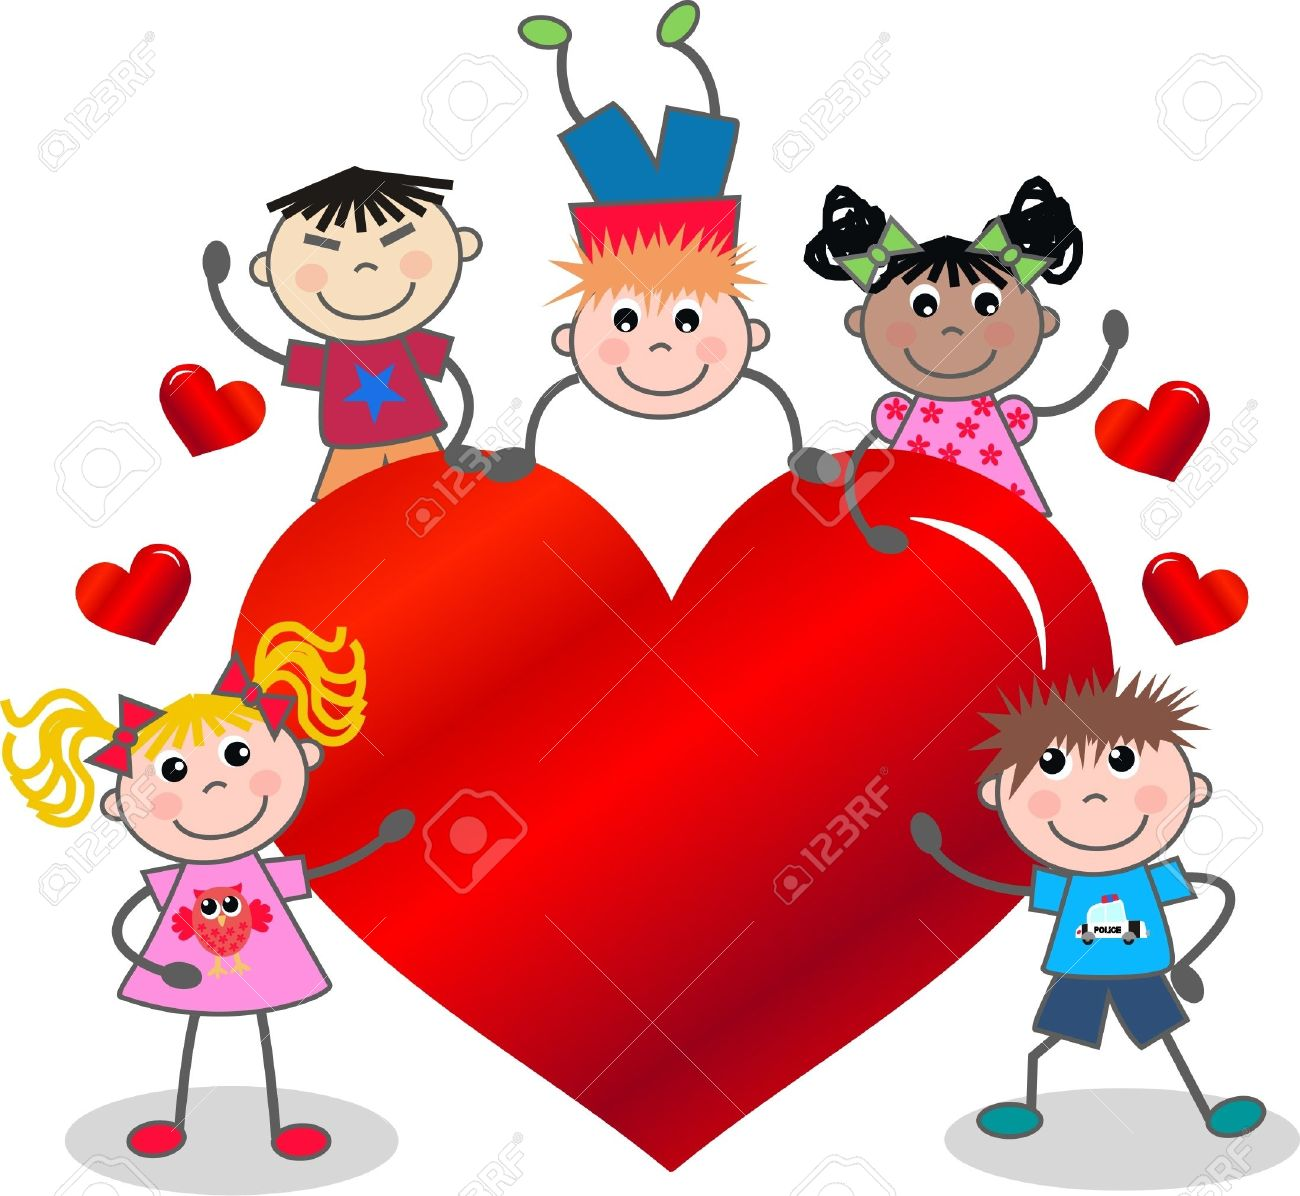 friendship cartoon stock photos royalty free friendship cartoon